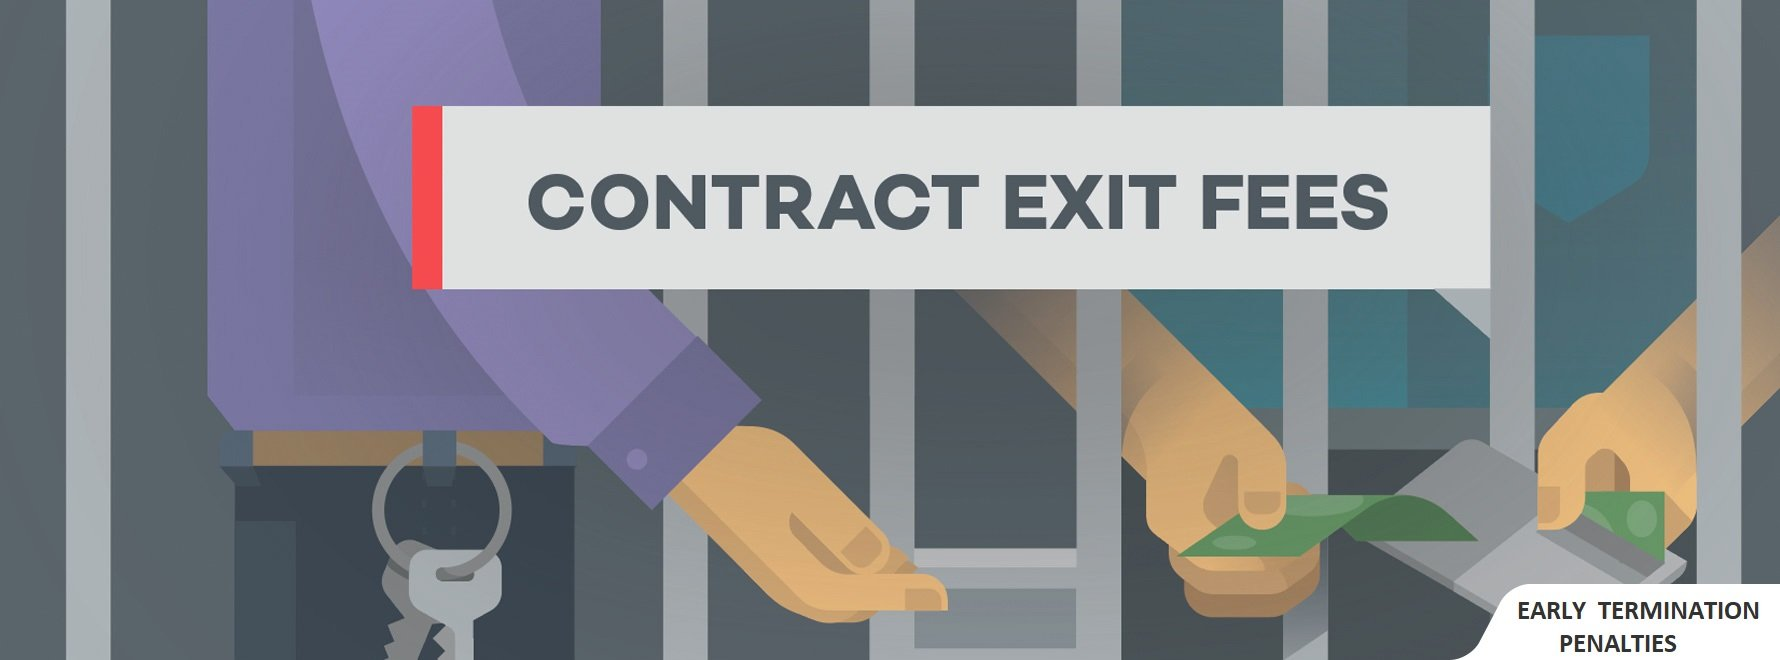 Contract Exit Fees | No Contract Credit Card Processing